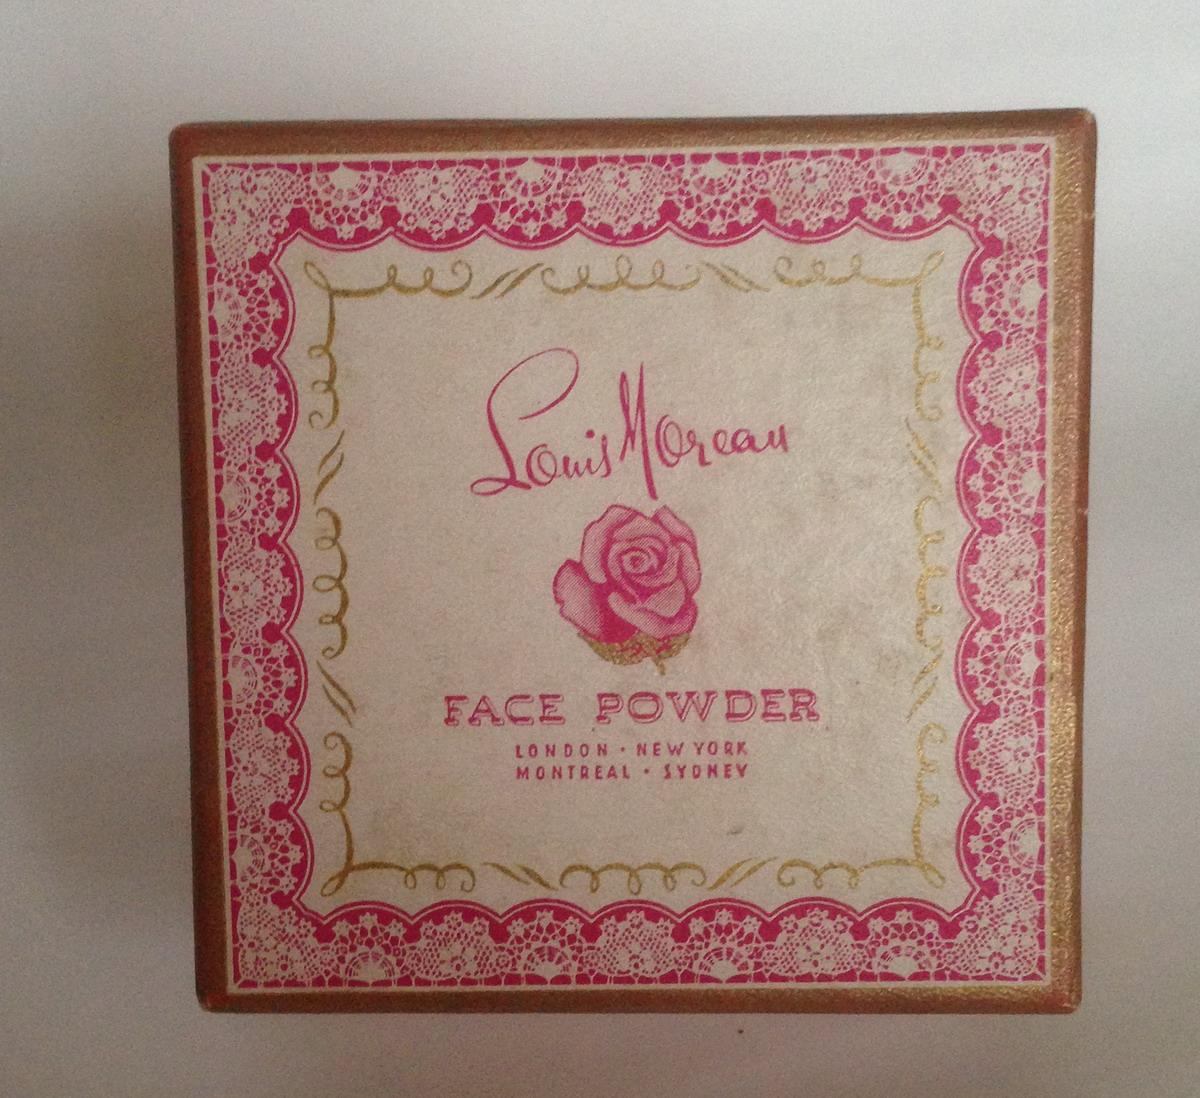 Louis Moreau - Face Powder